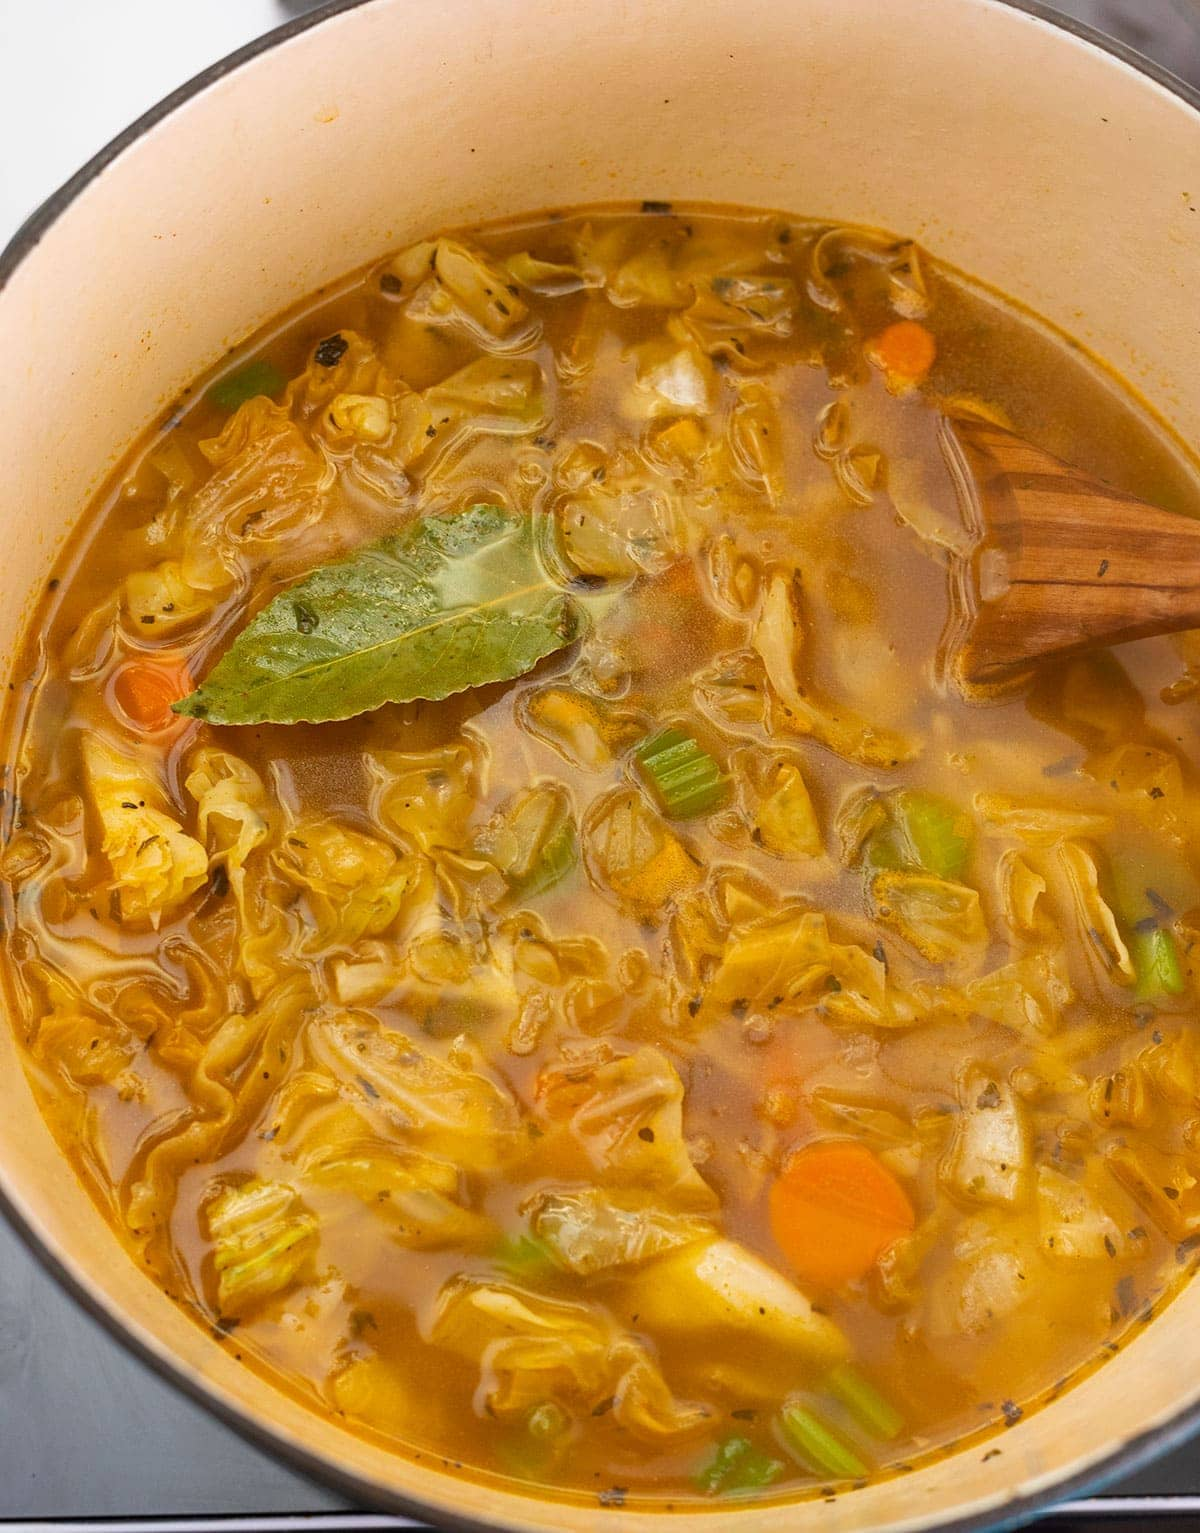 cabbage soup cooking in the pot